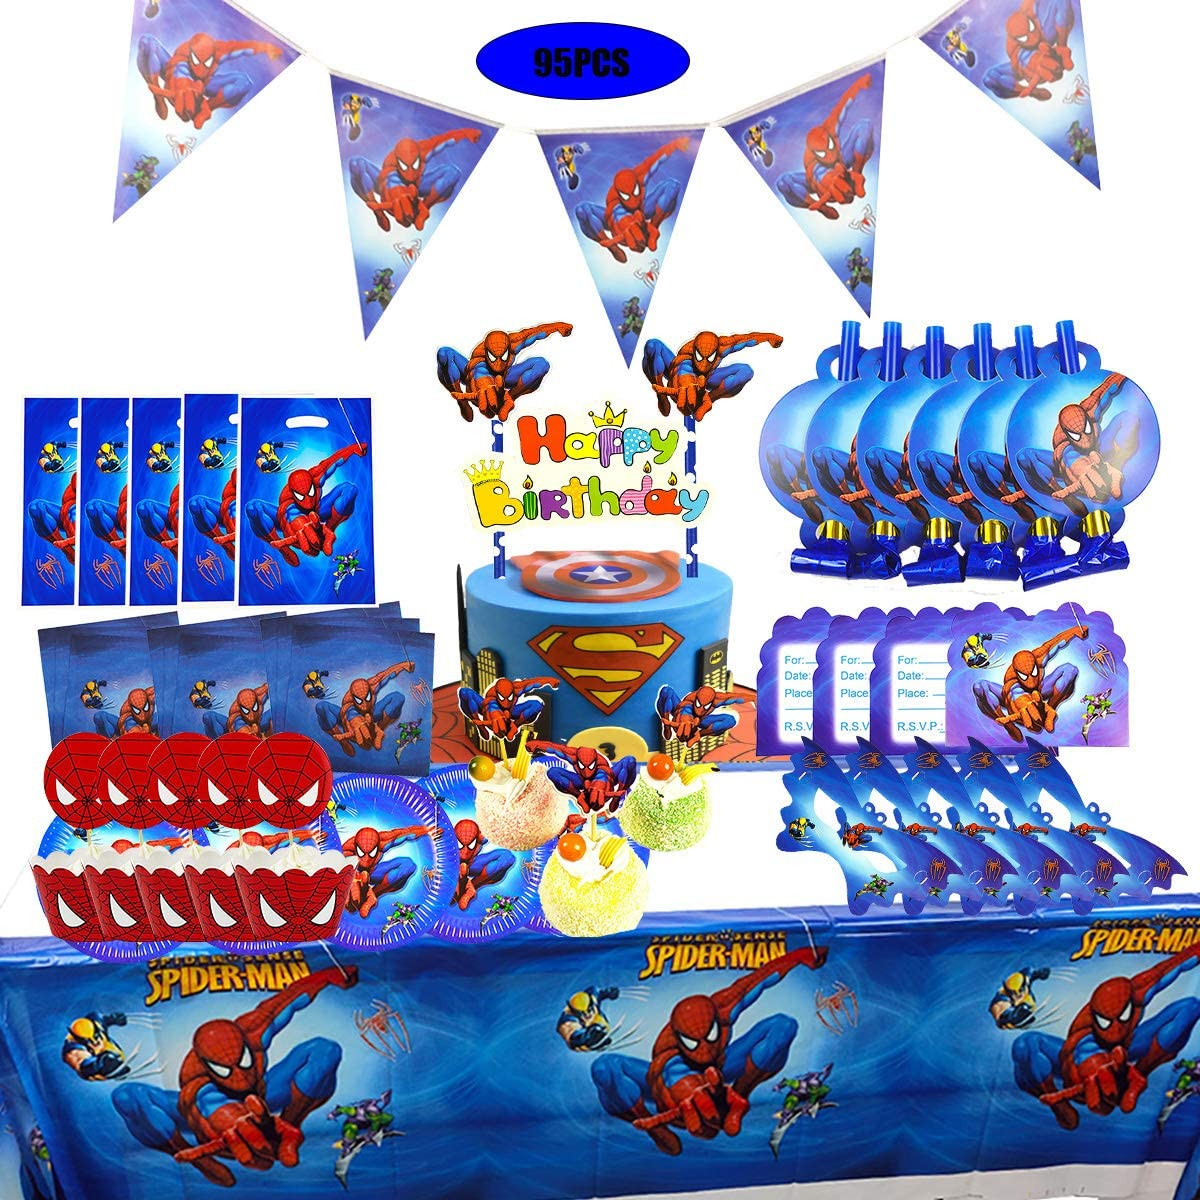 TOXYU 95Pcs Spiderman Party Supplies for Boys Baby Birthday Decorations Includes Table Cloth, Cake Topper, Gift Bags, Dinner plate, Invitation Card, Mask, Spiderman Banner and Napkins, Disposable Tableware Kits